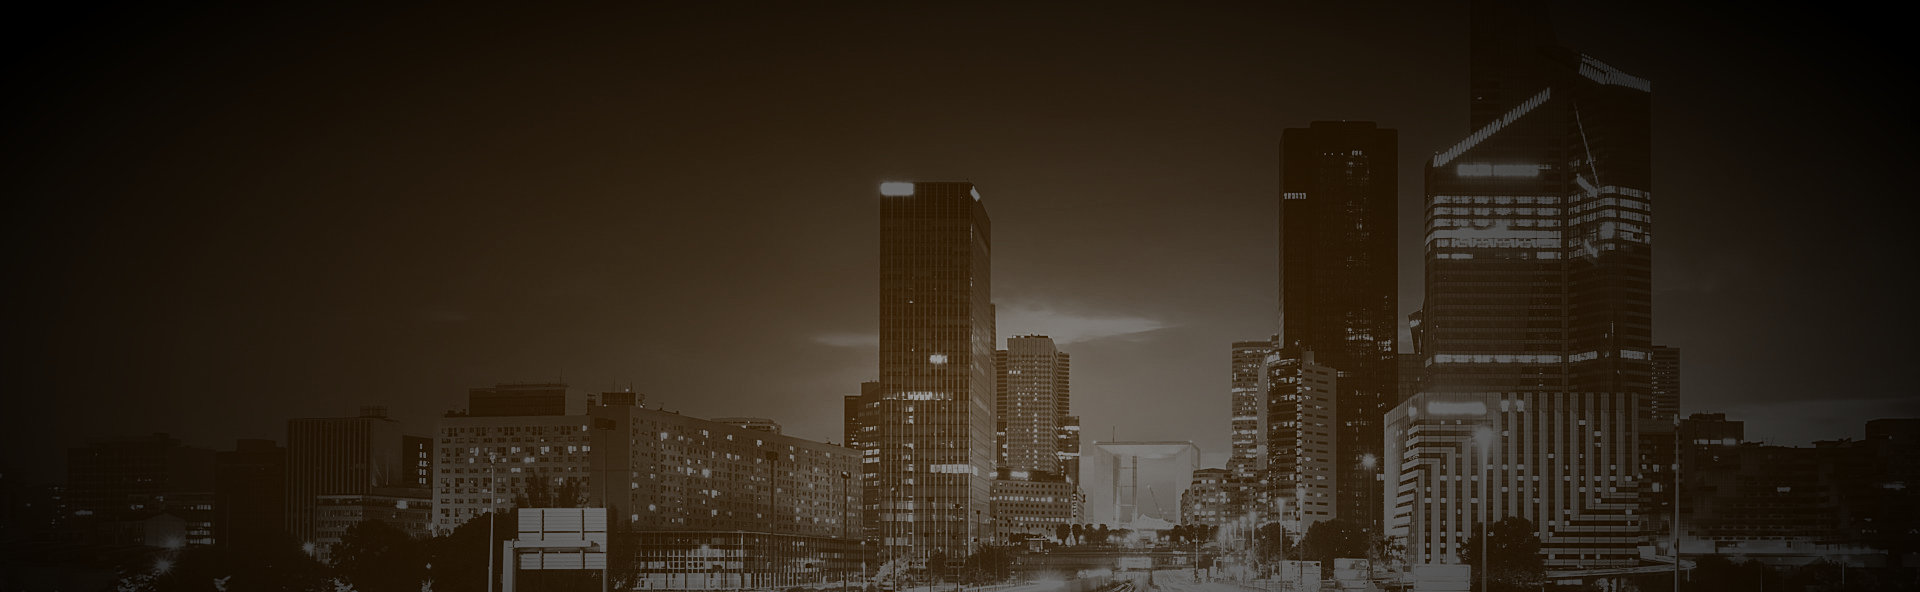 cities view with brown background